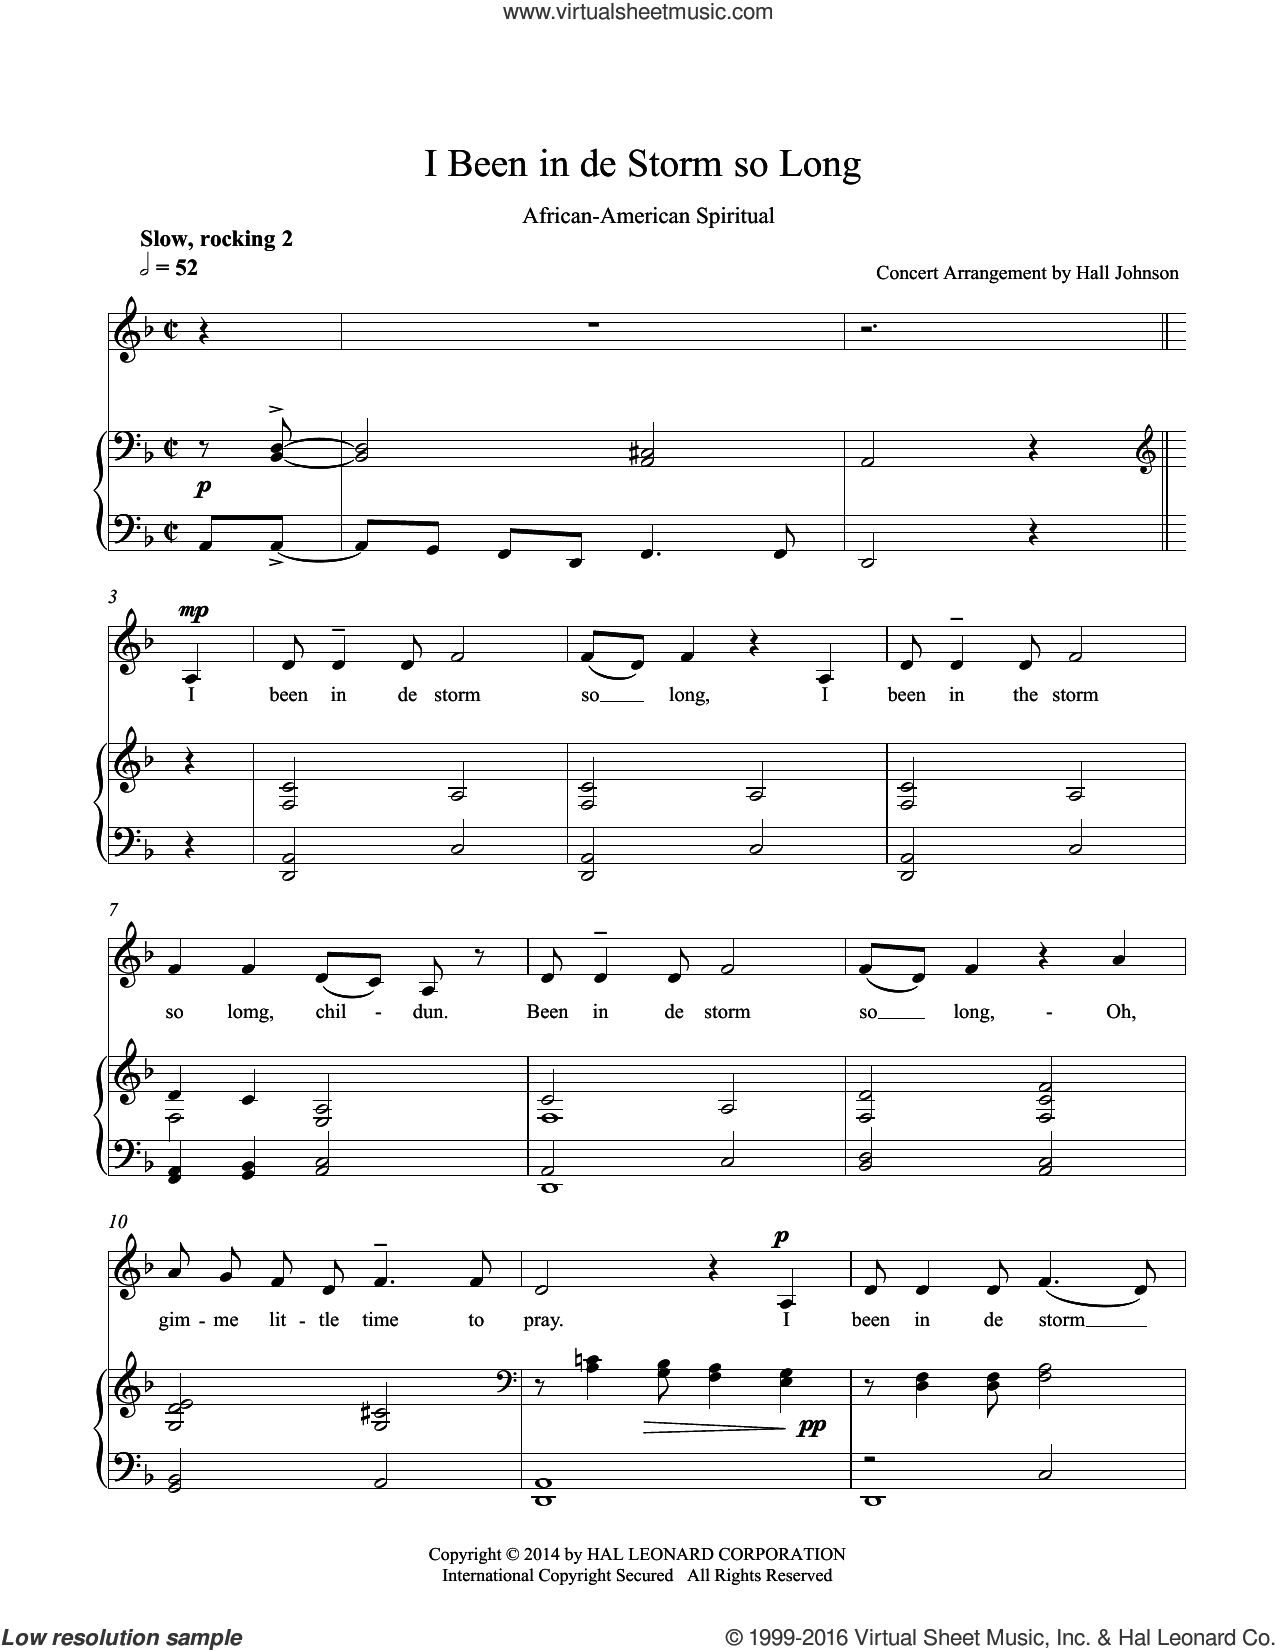 I Been in de Storm So Long (D minor) sheet music for voice and piano by Hall Johnson, classical score, intermediate skill level